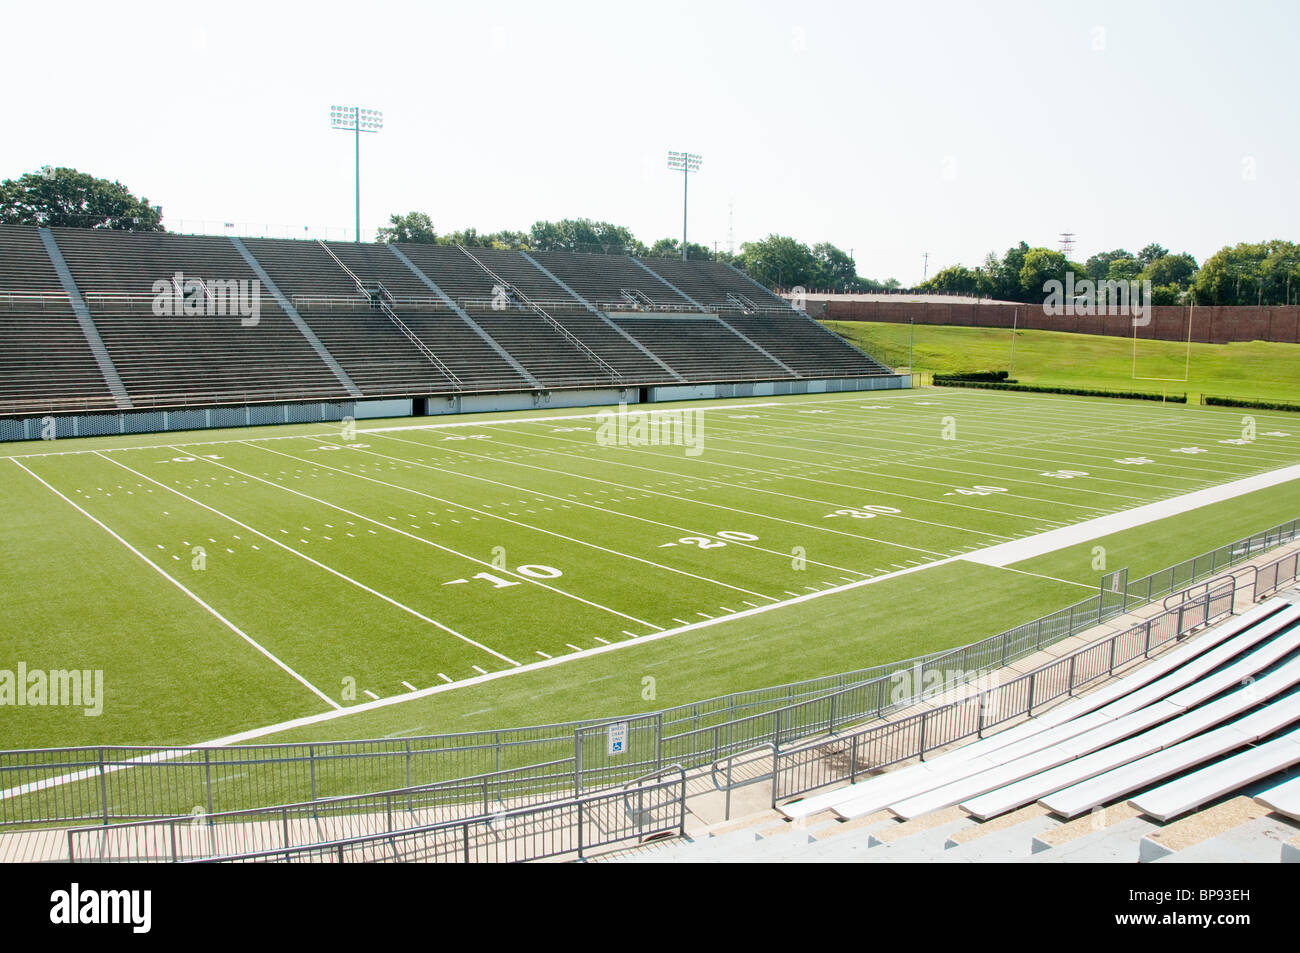 American football stadium with view of entire field. - Stock Image